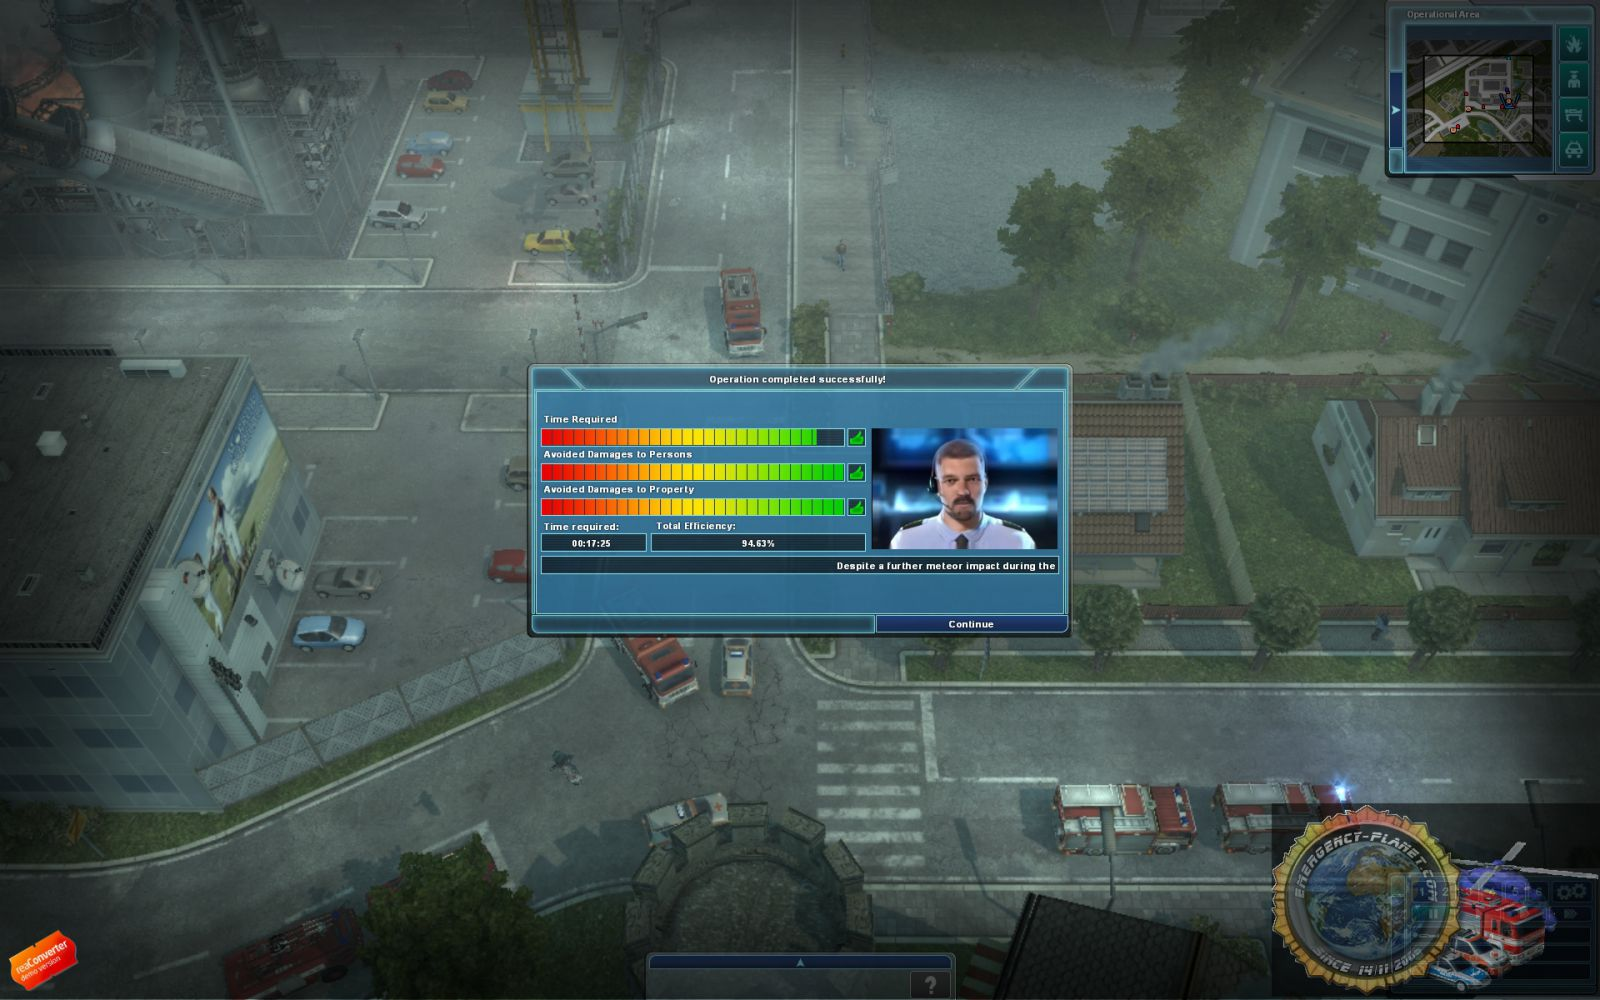 Emergency 2014 Screenshot 19